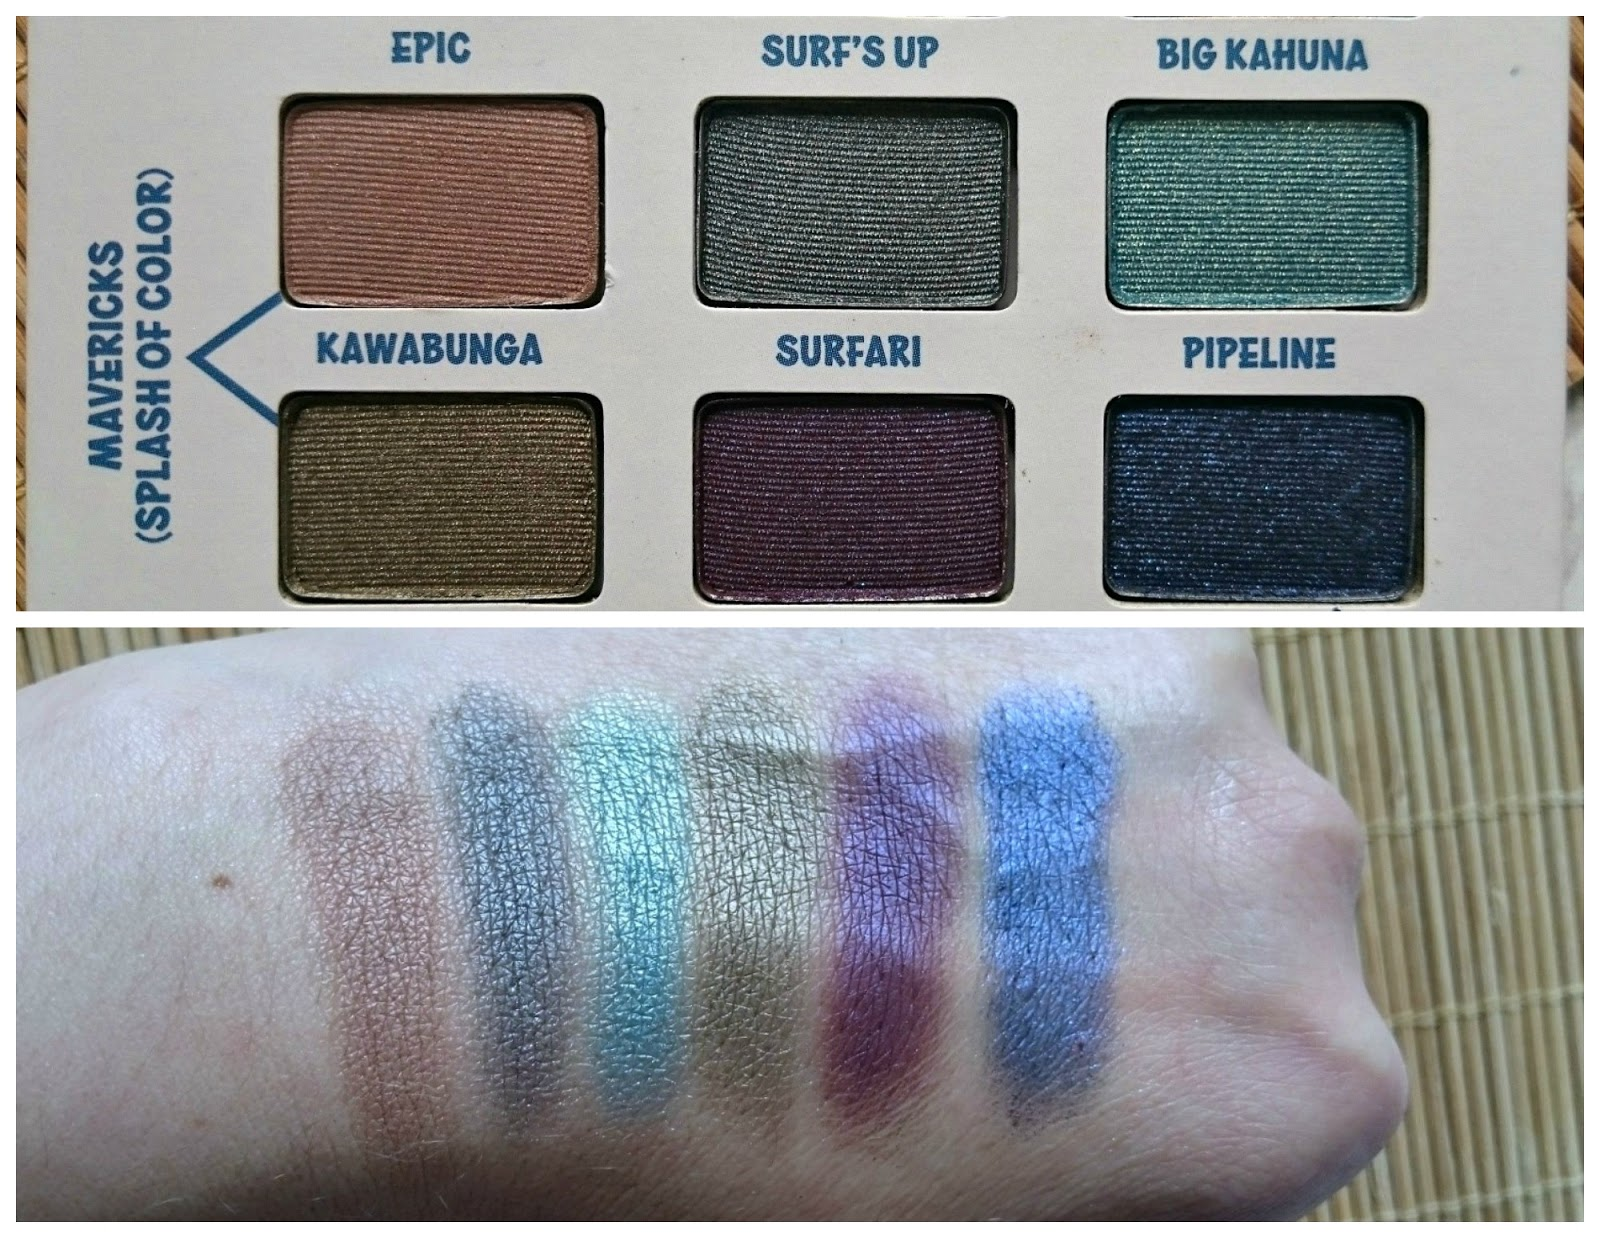 The Balm Balmsai palette swatches